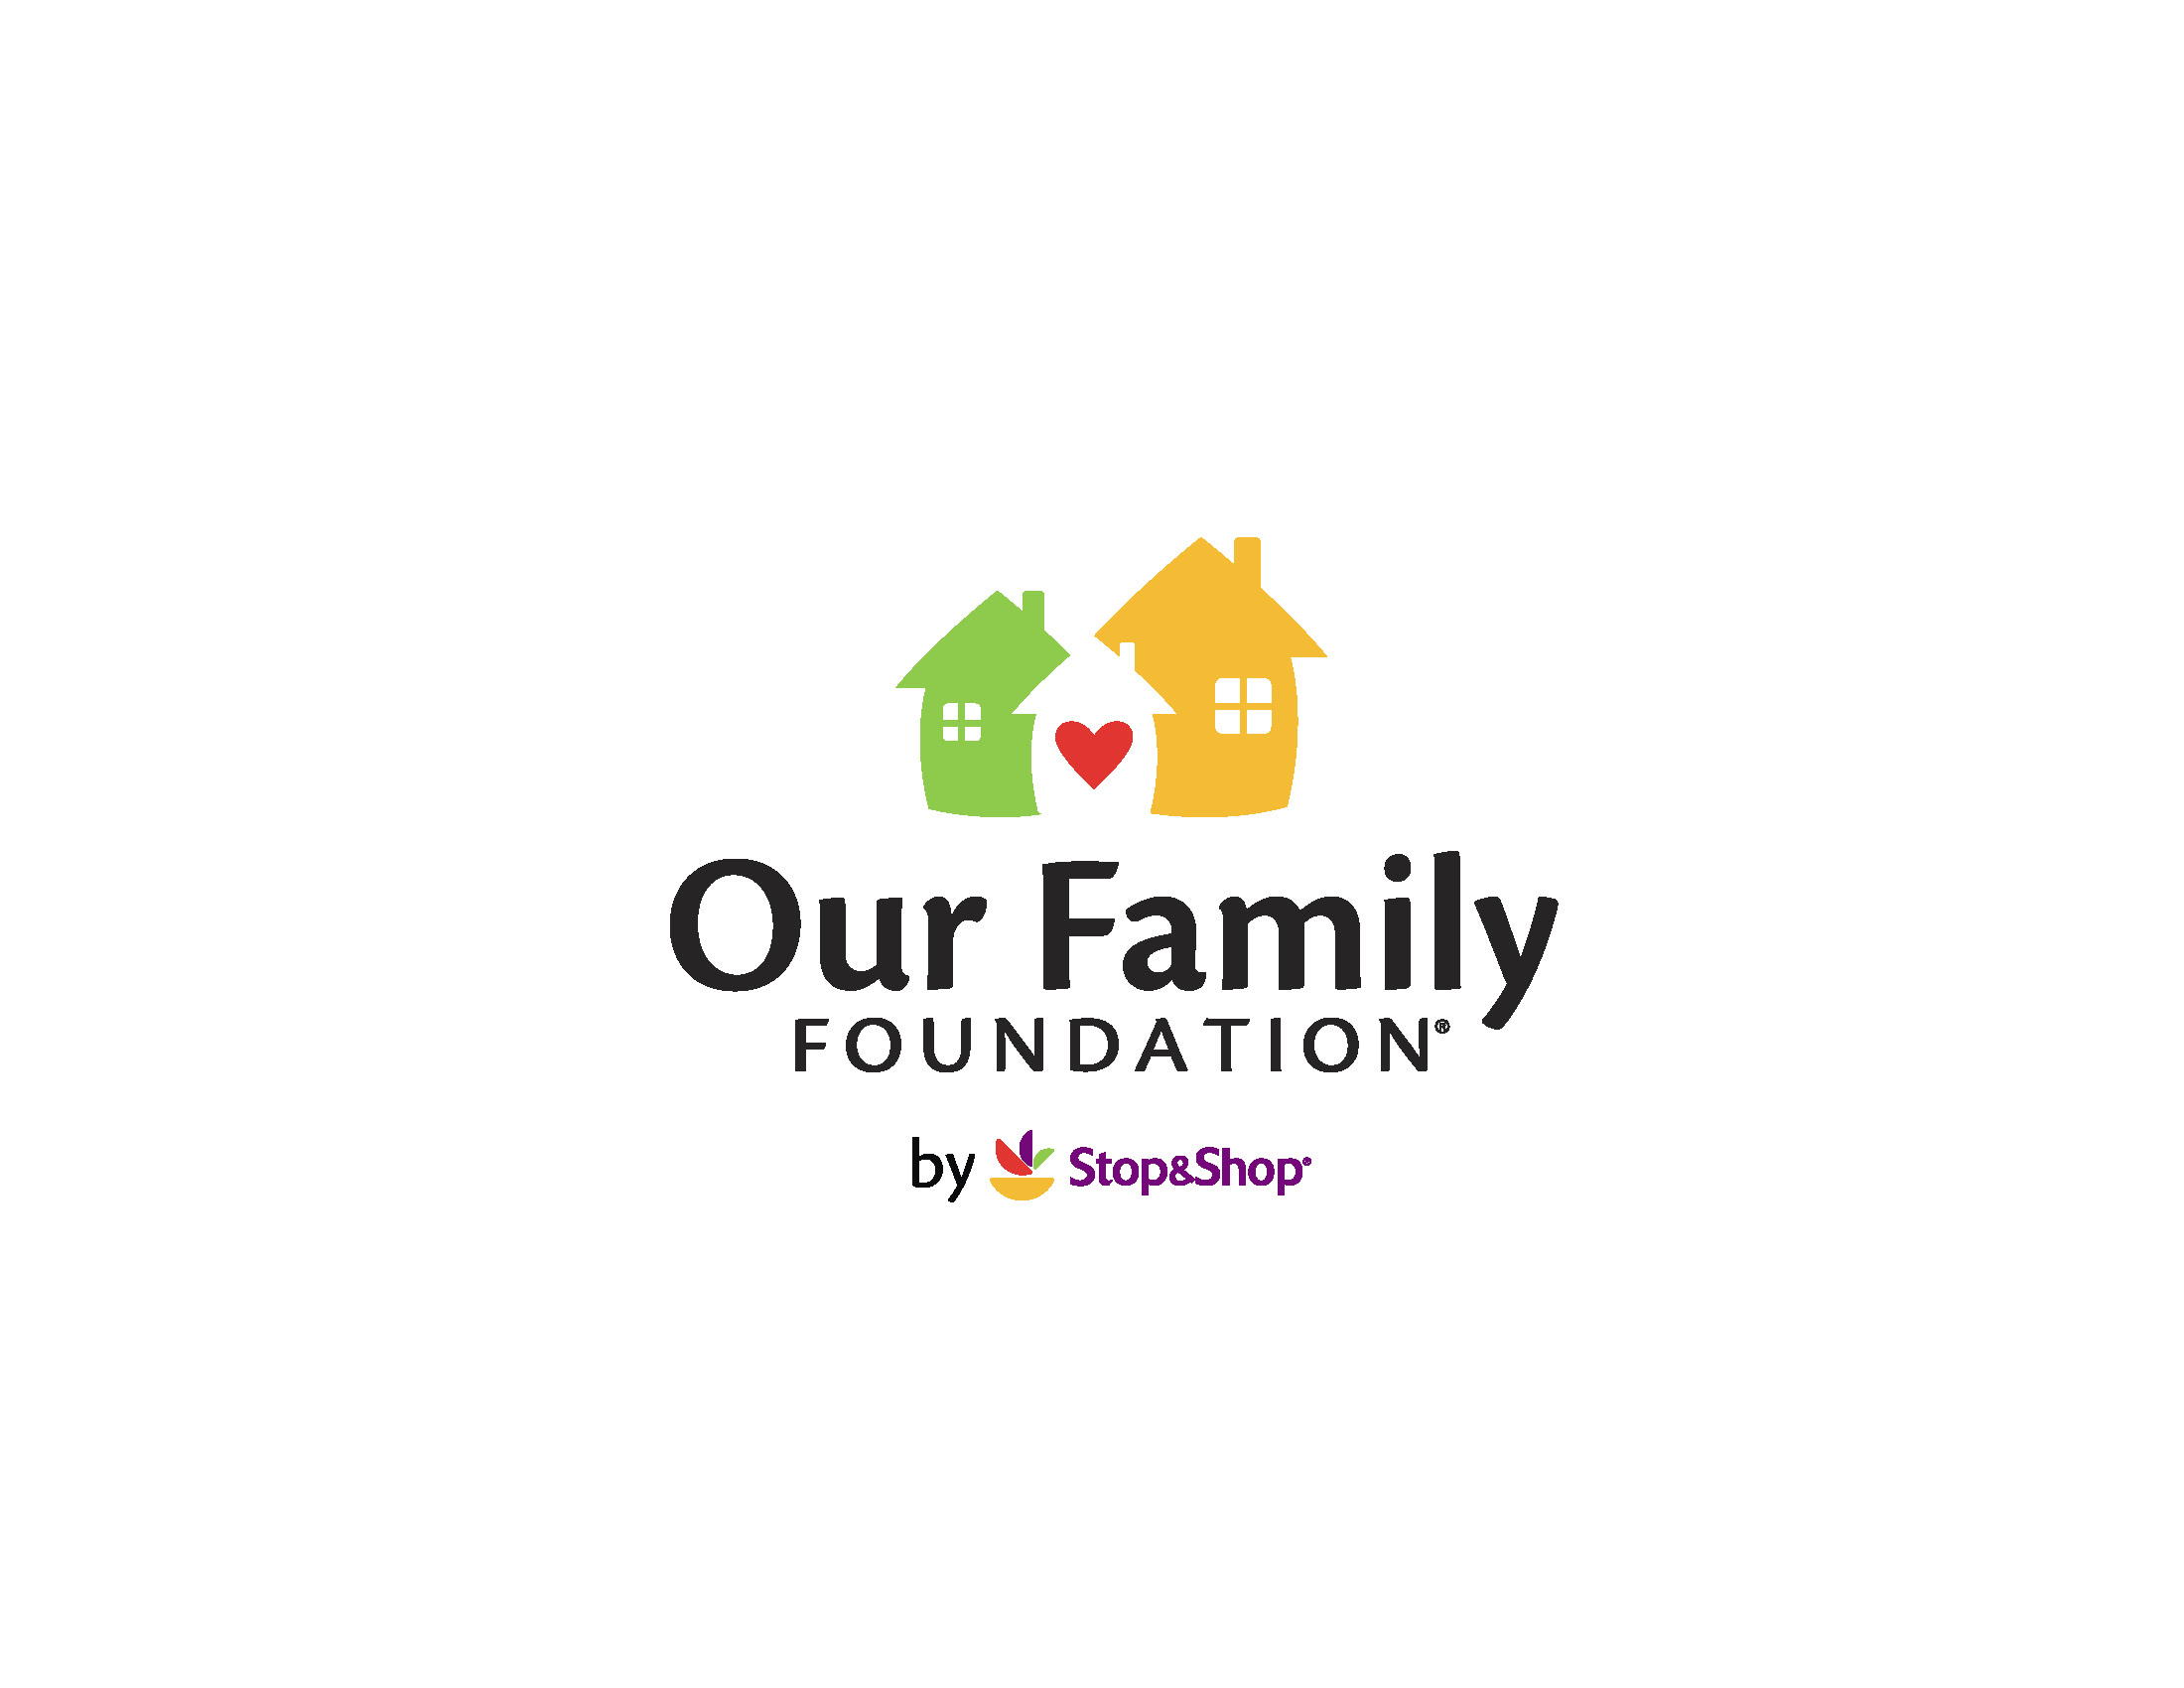 LONG ISLAND CARES RECEIVES GRANT FROM OUR FAMILY